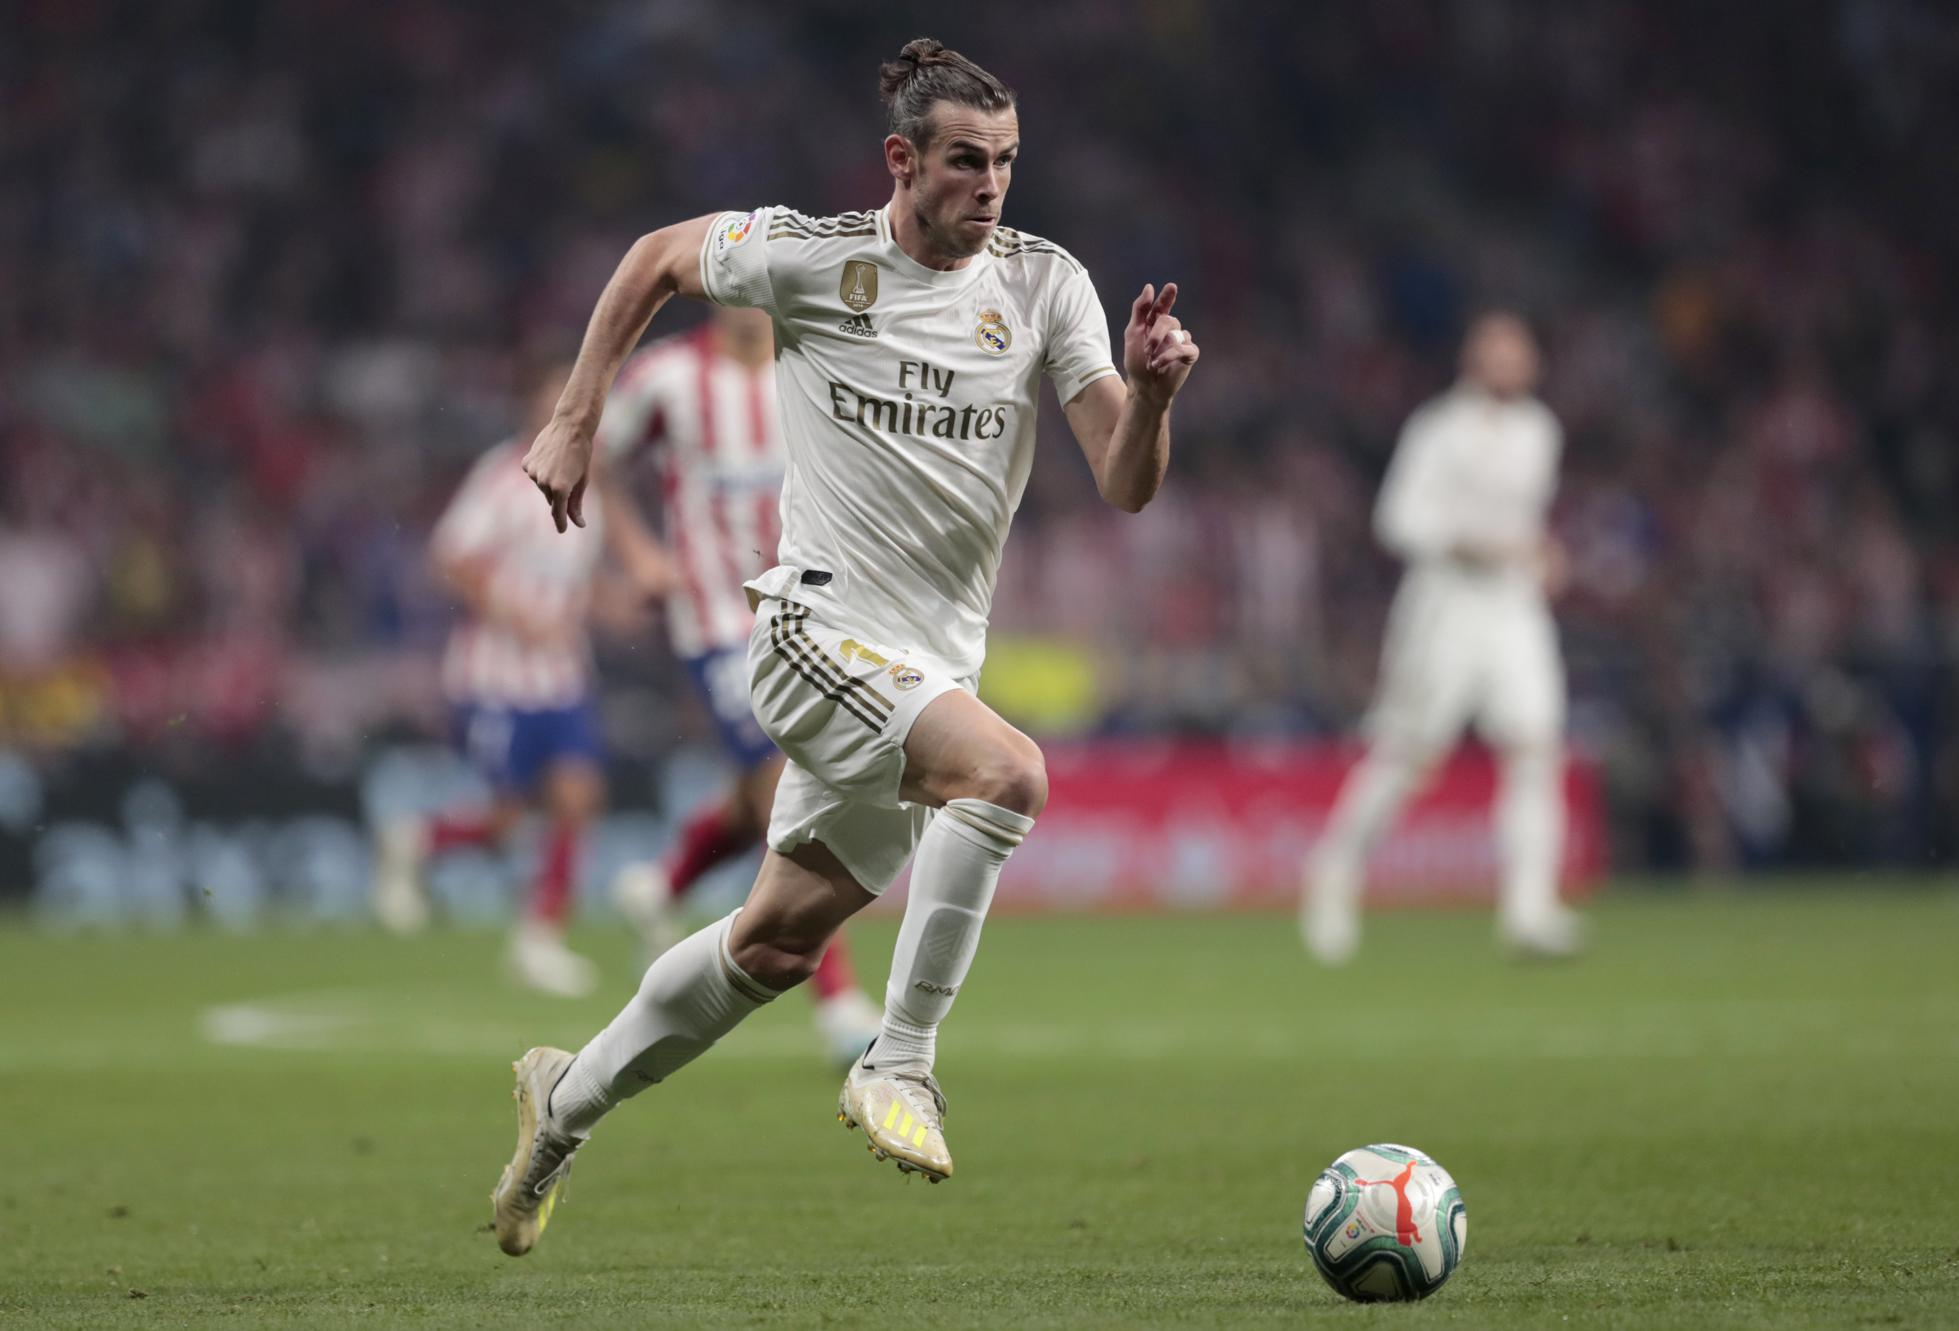 Gareth Bale appearing for Real Madrid